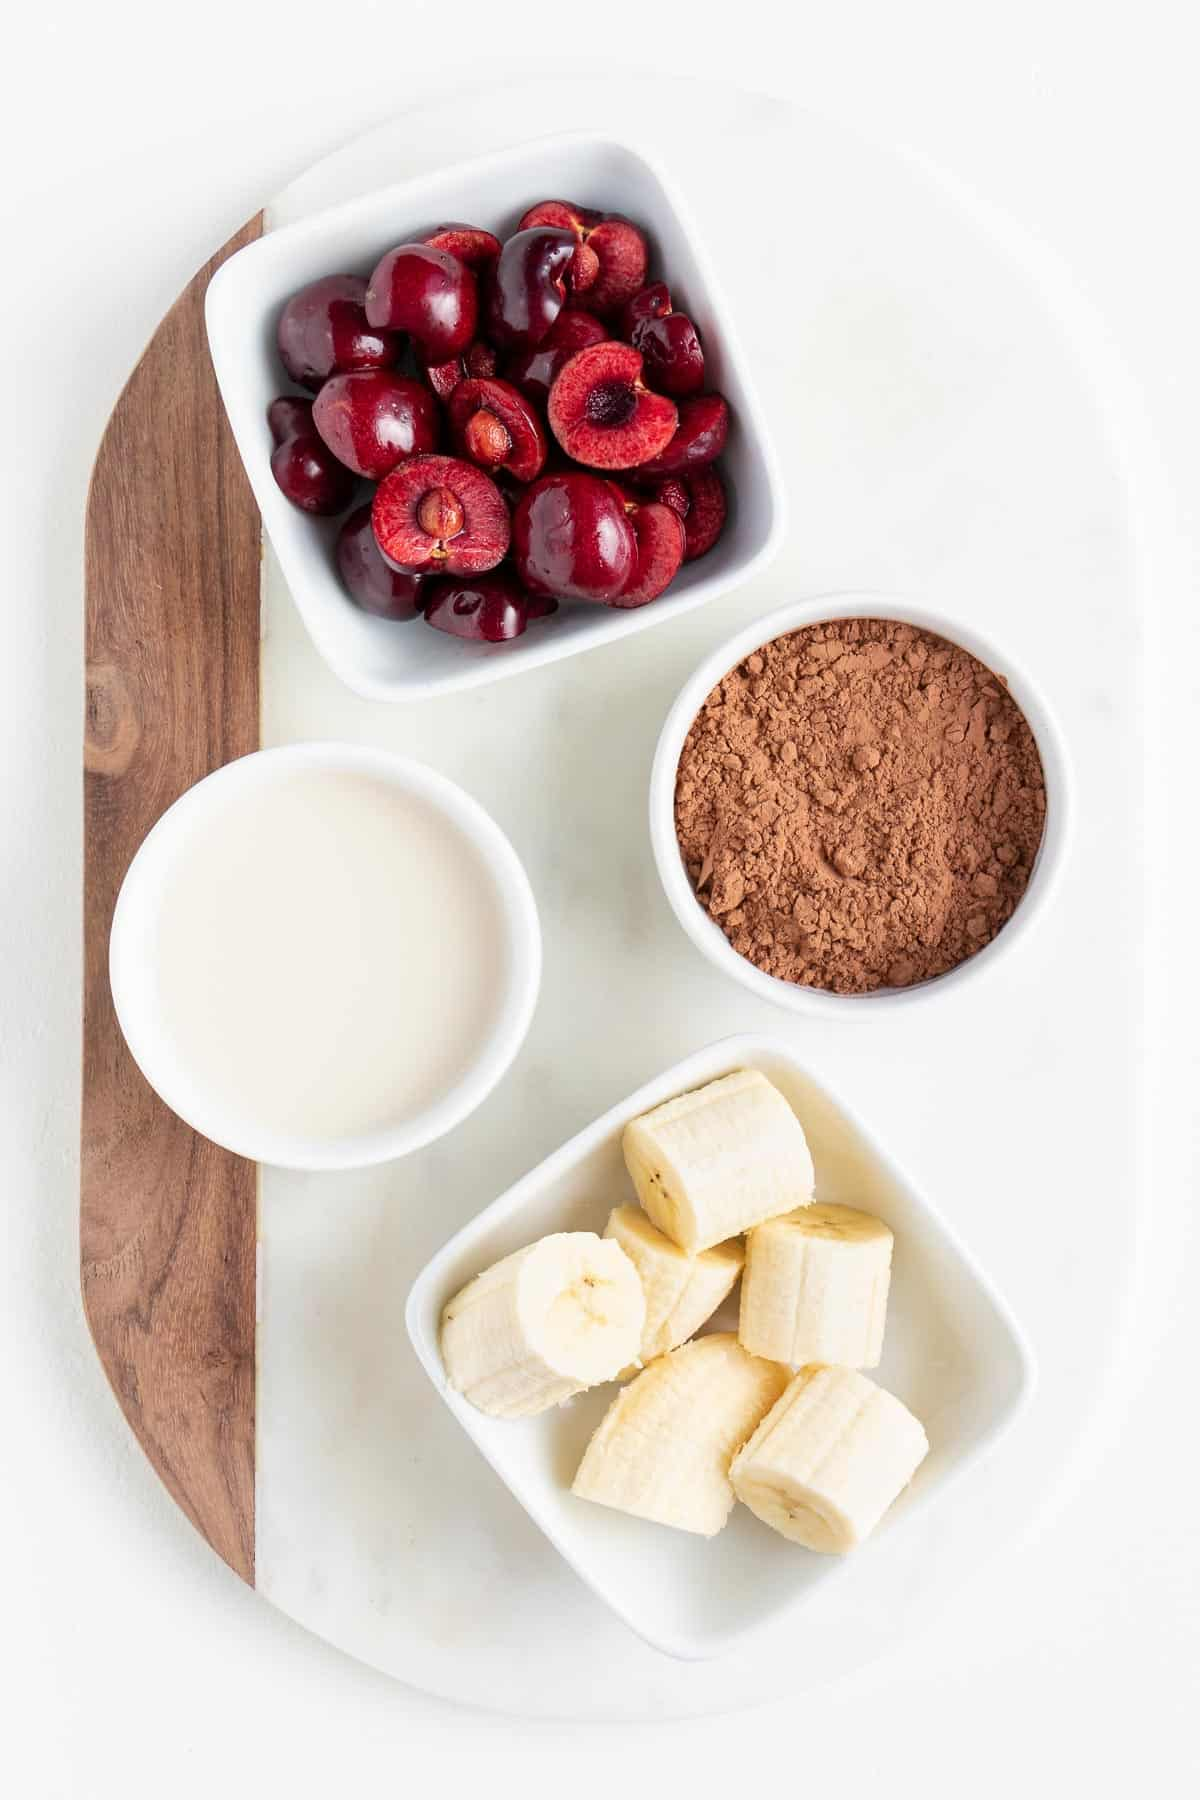 sliced bananas, cocoa powder, almond milk, and berries inside bowls on a white marble board